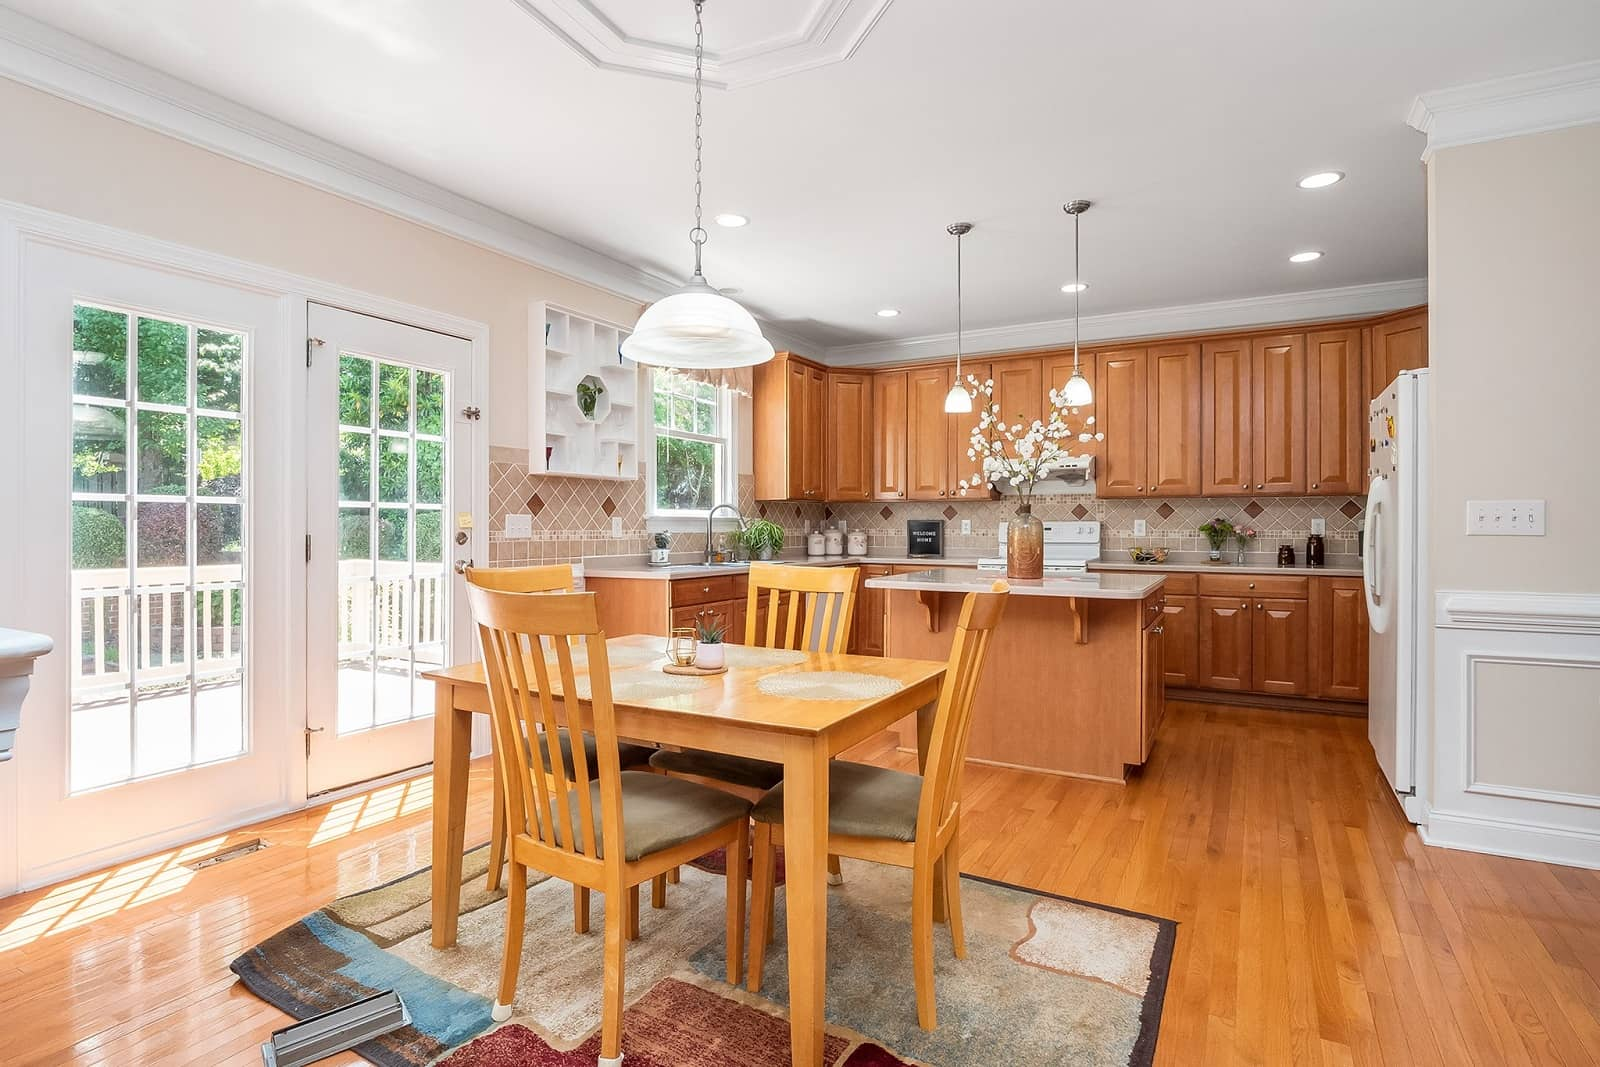 Real Estate Photography in Cary - NC - USA - Kitchen View